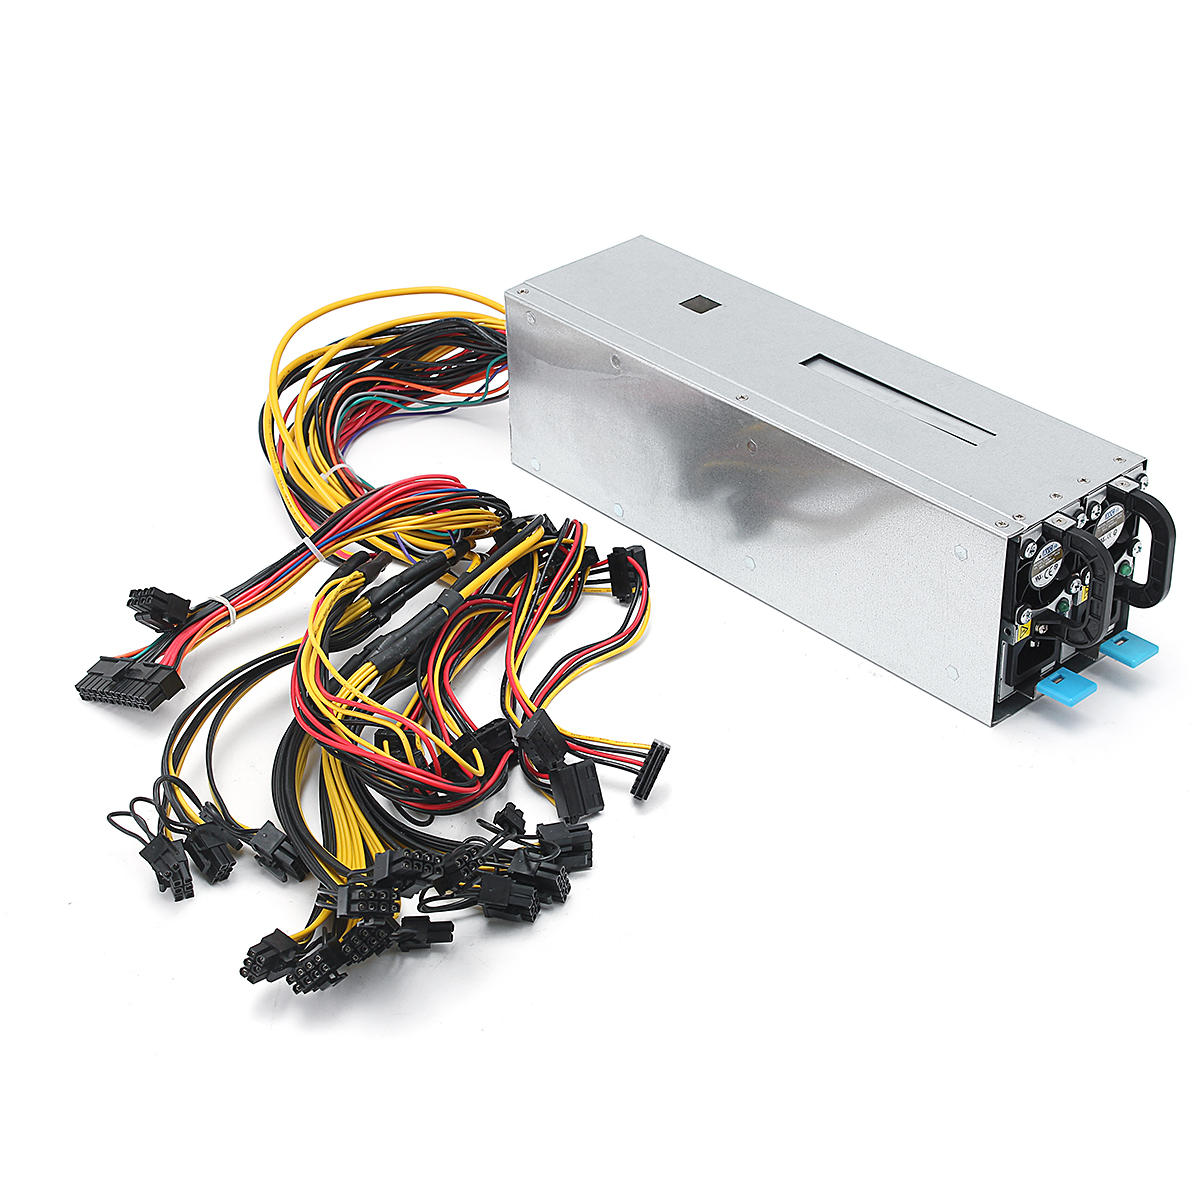 110-240V 1600W Mining Machine Power Supply For Eth Bitcoin Miner Antminer  S7 S9